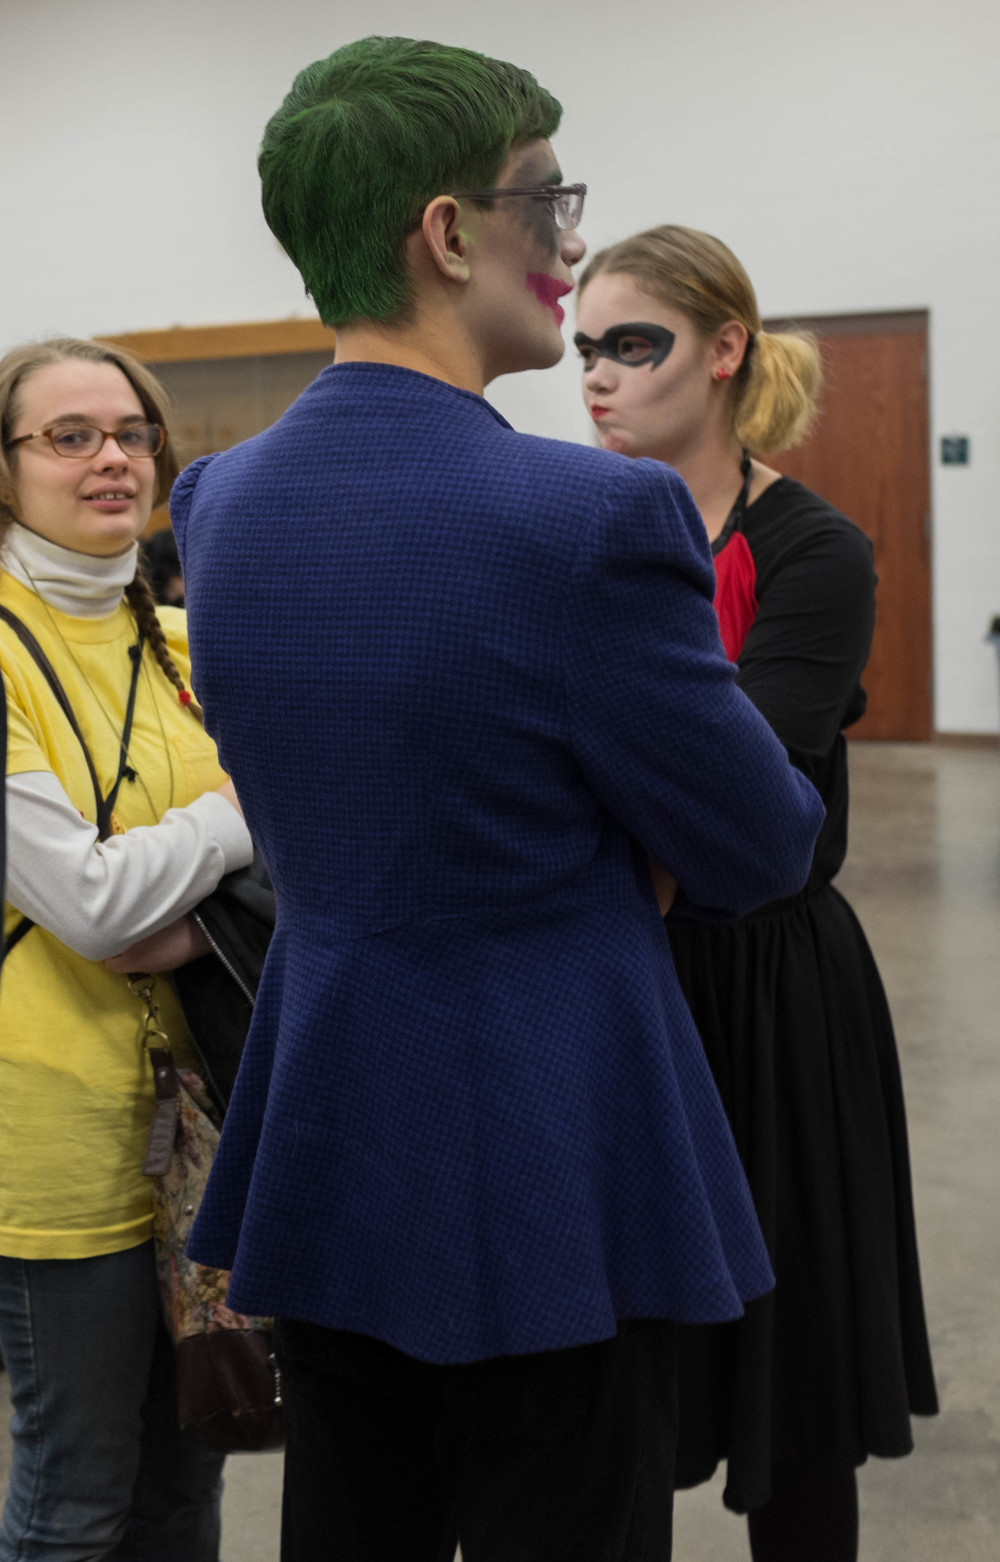 The Joker and Harley Quinn's friend saw me snapping a picture of them. It was all good though.